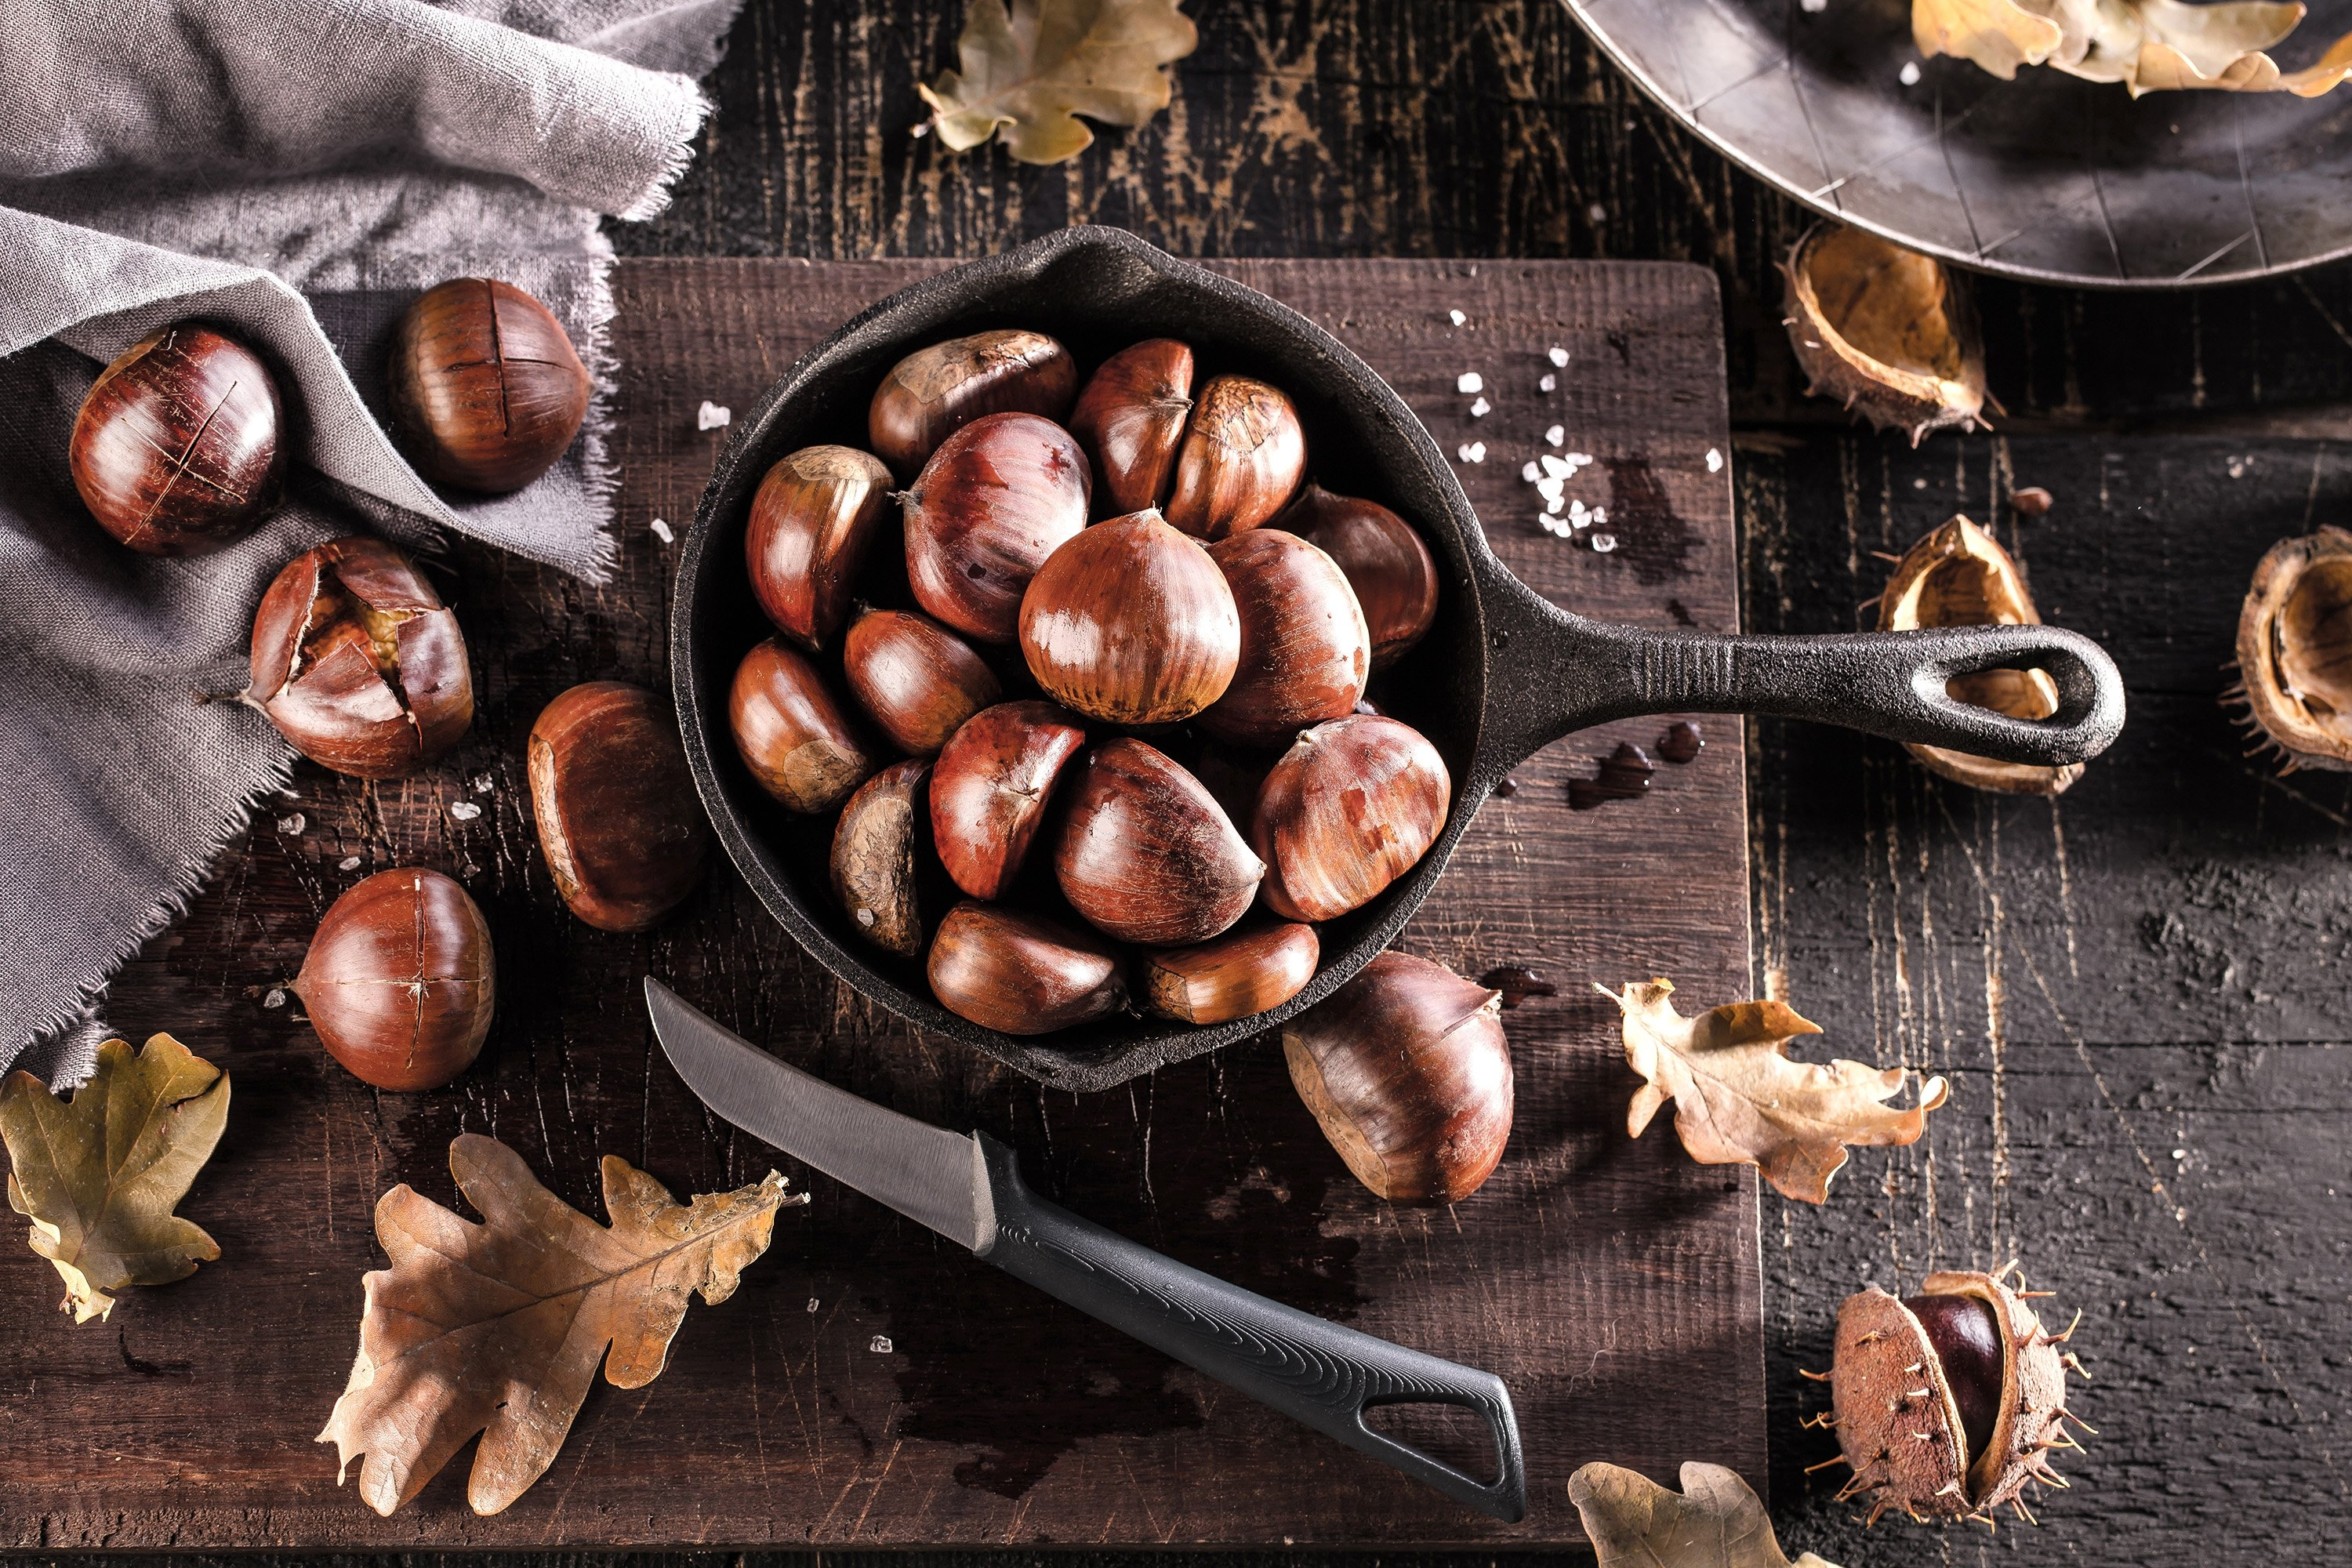 Make sure to cut the hard peel of chestnuts before roasting them to prevent them from exploding. (Shutterstock Photo)